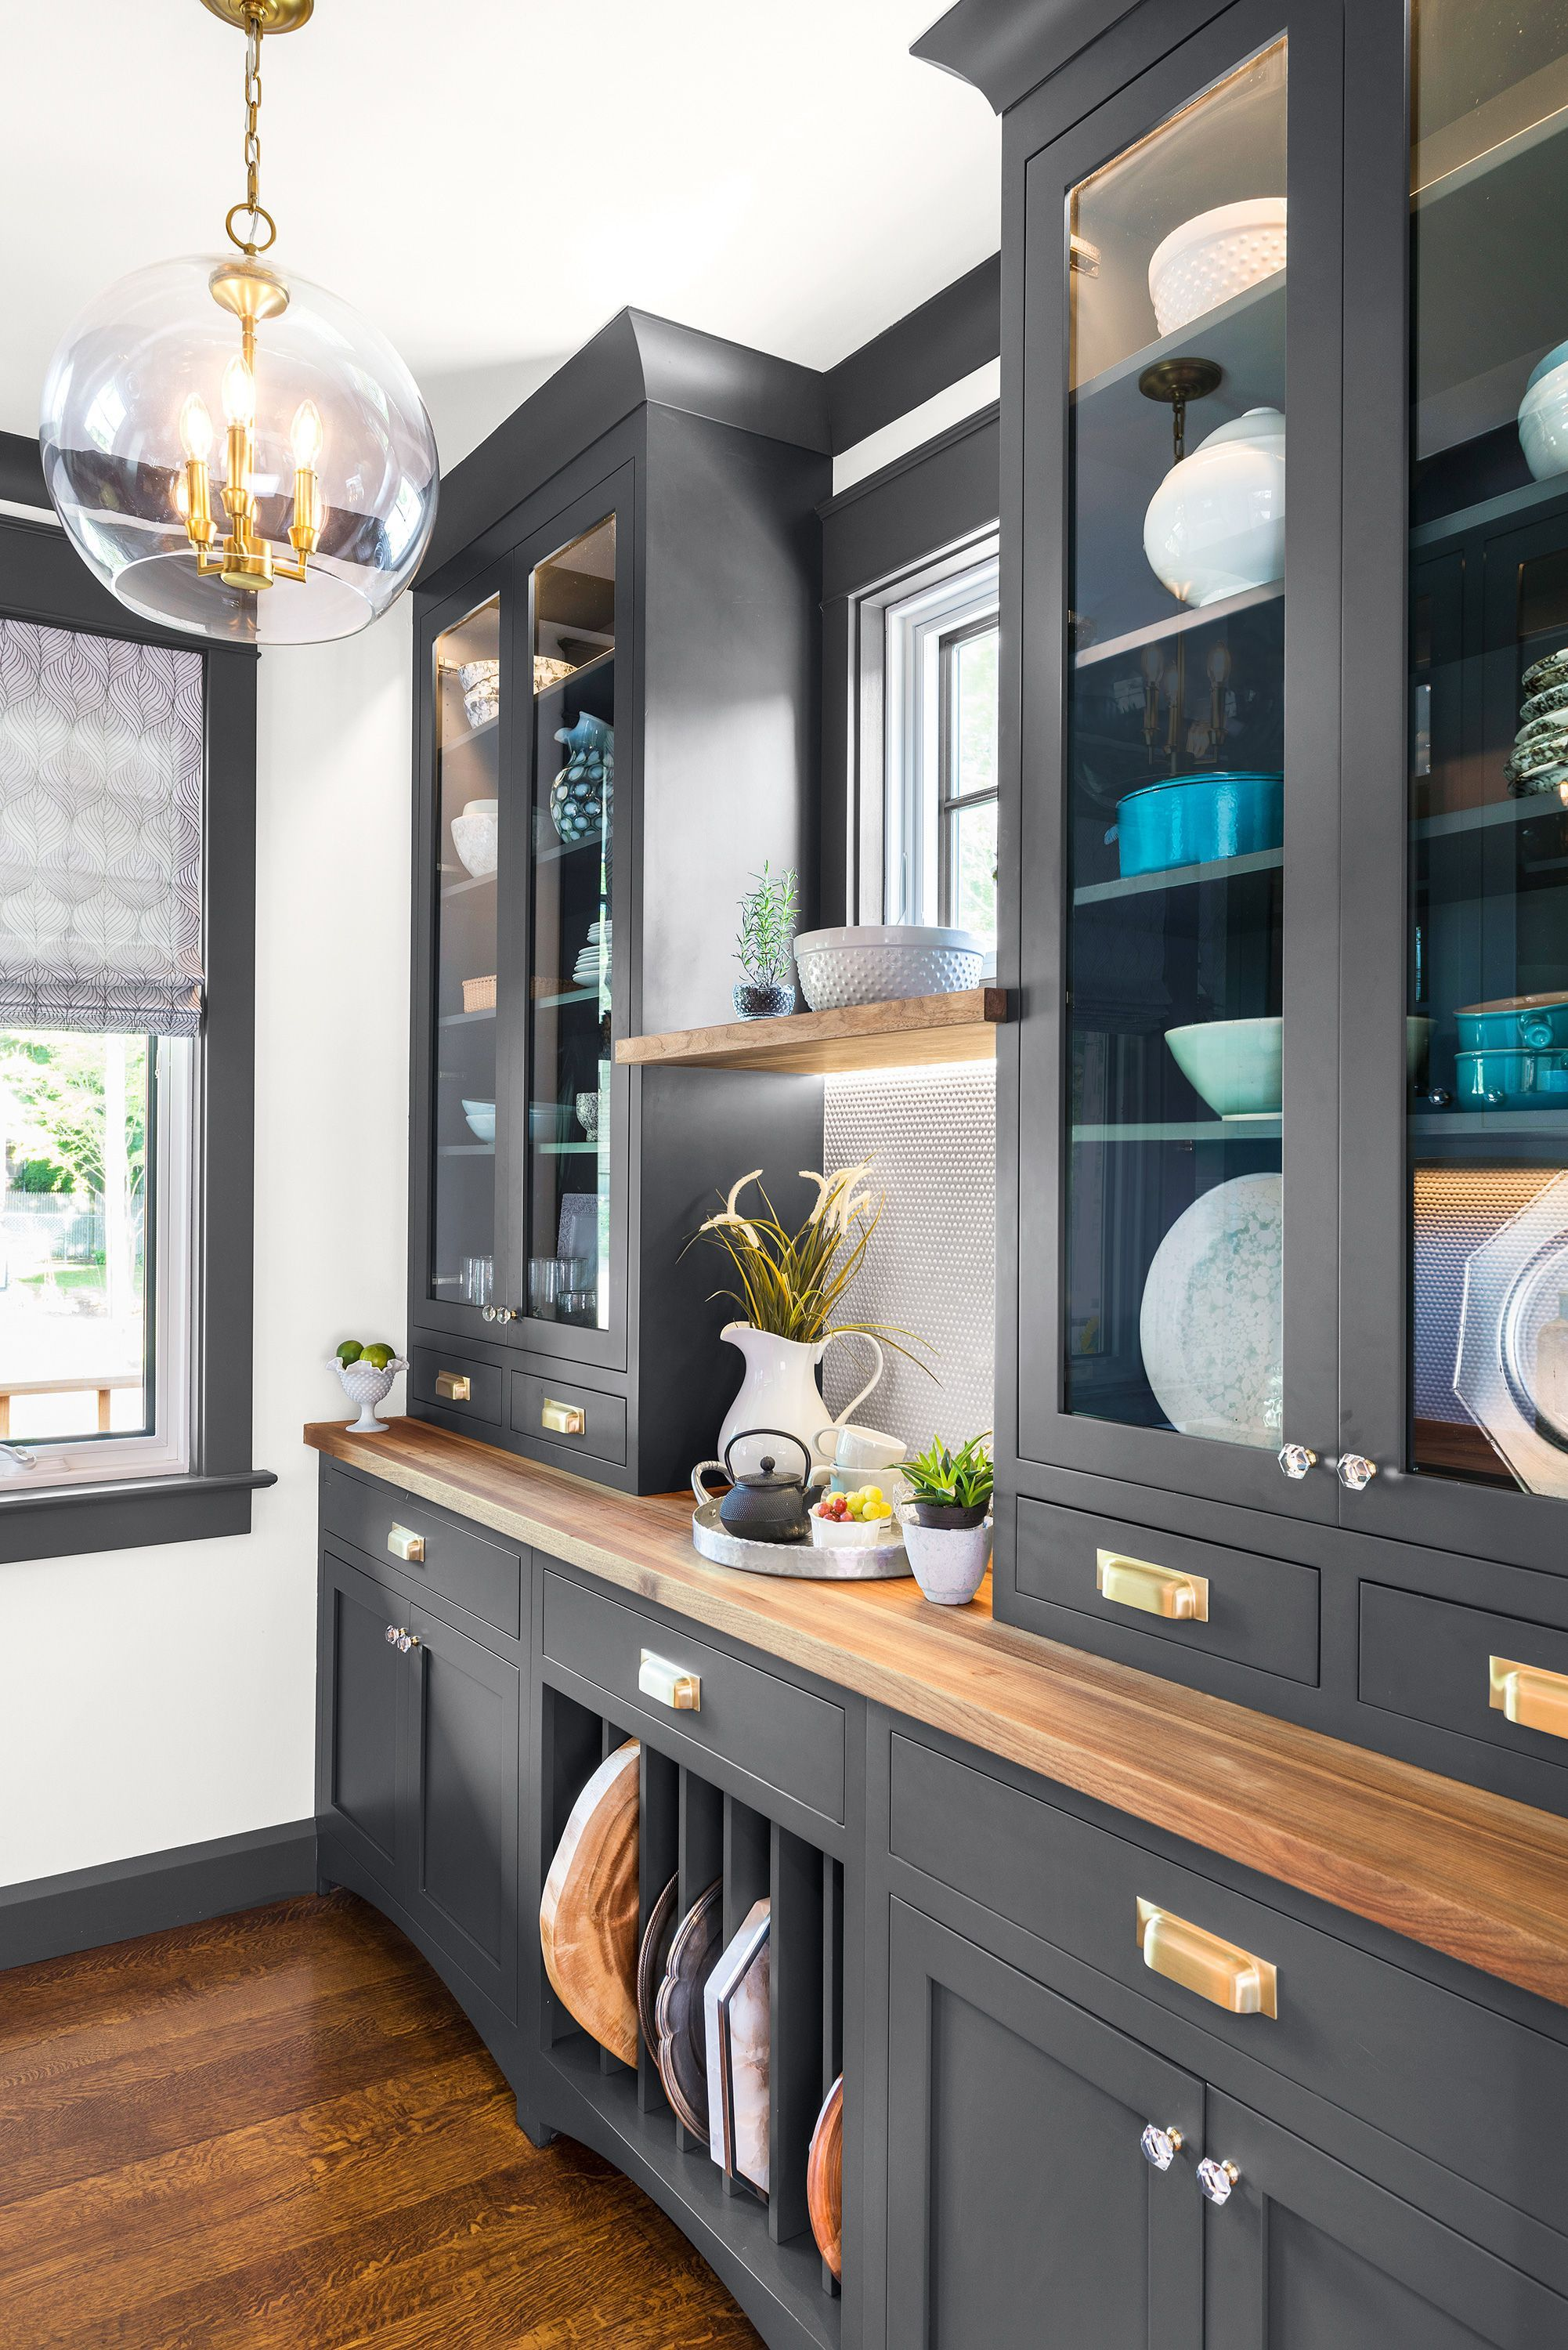 #house #idea #Play #spaces #work Our butler's pantry meets modern-day storage …